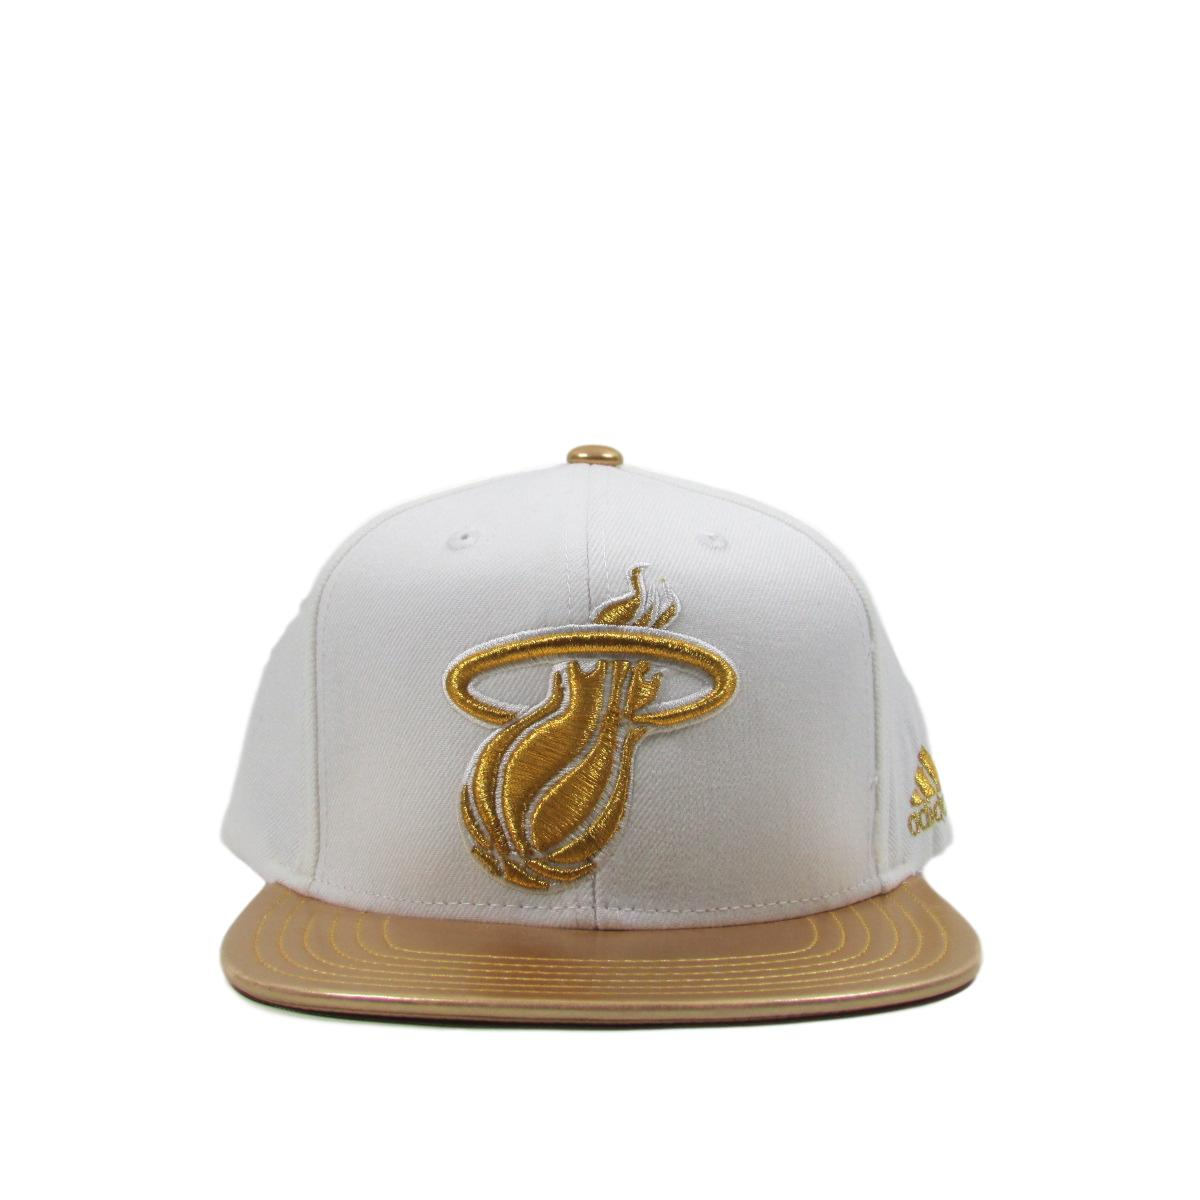 Miami Heat White Gold Leather Brim Basketball Snapback Hat Adidas